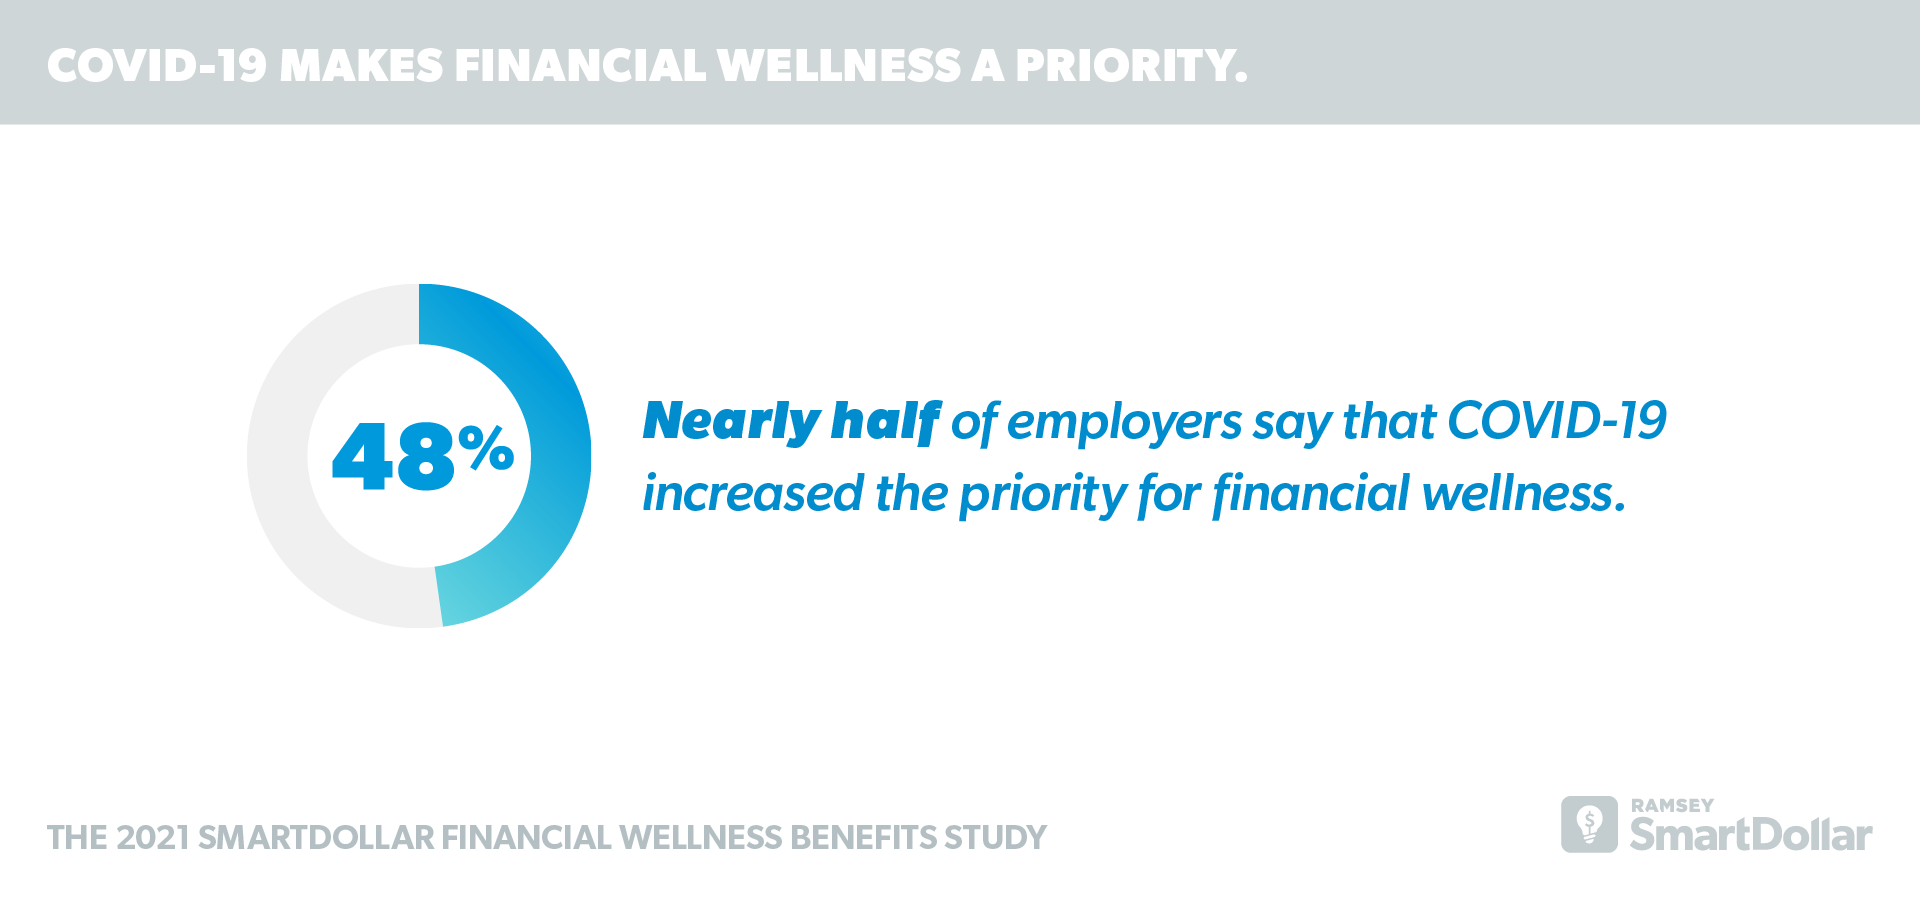 COVID-19 Makes Financial Wellness a Priority.